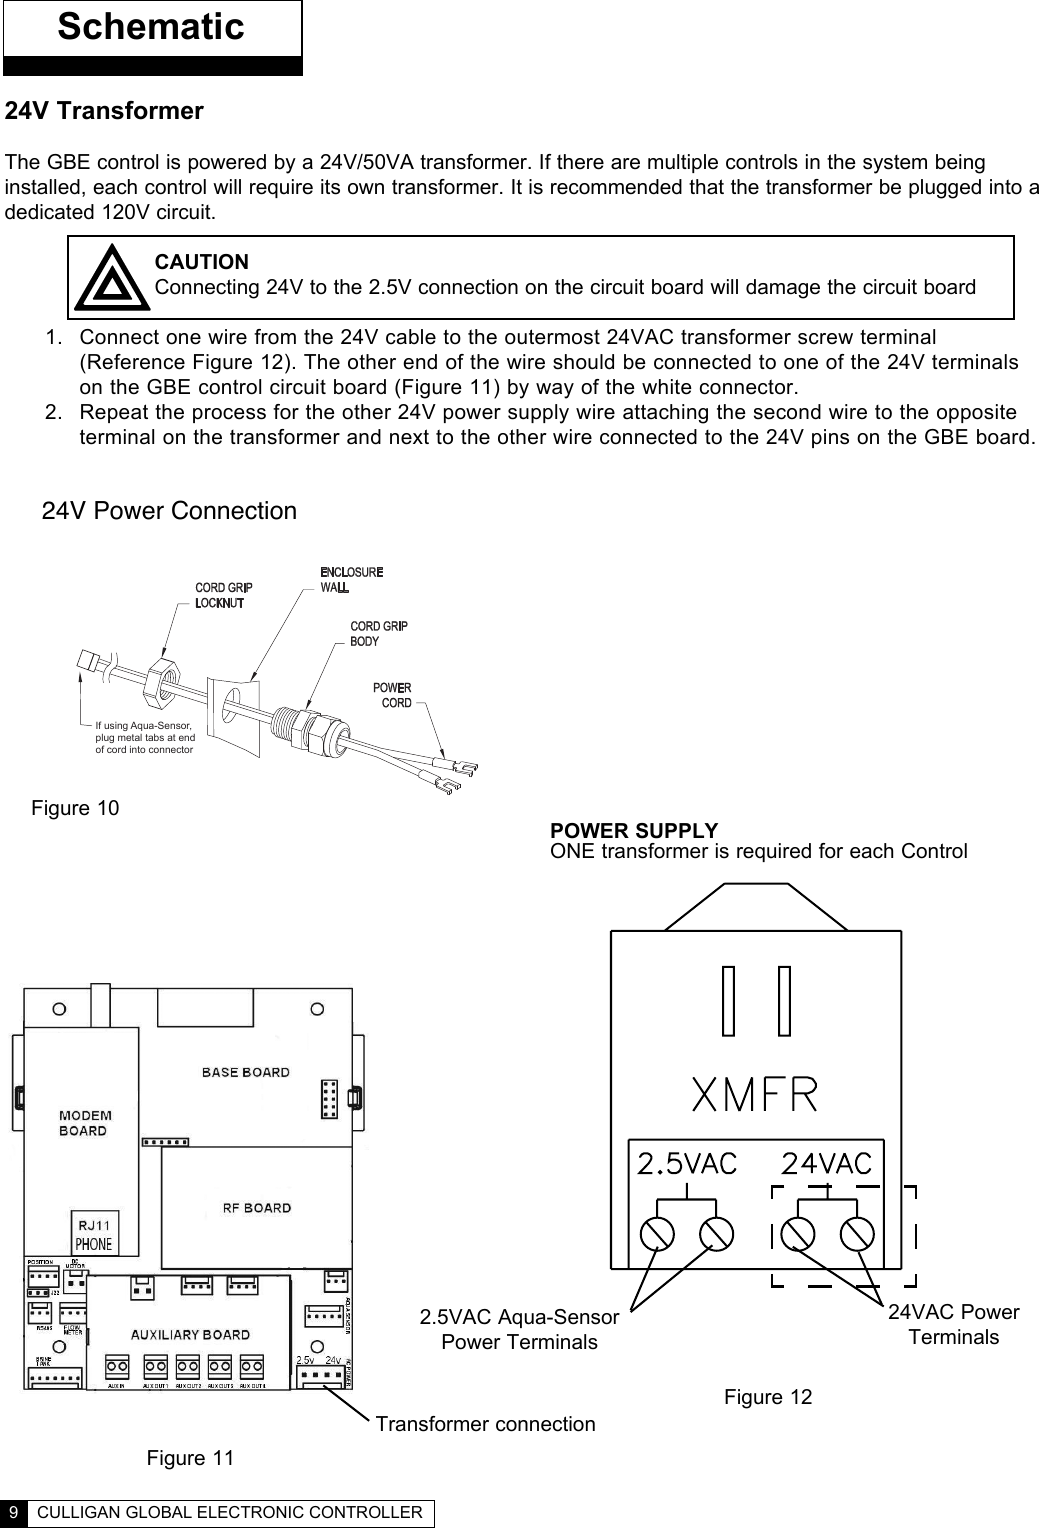 Doorbell Transformer 24v U0026 Connect The Other End Of The Manual Guide